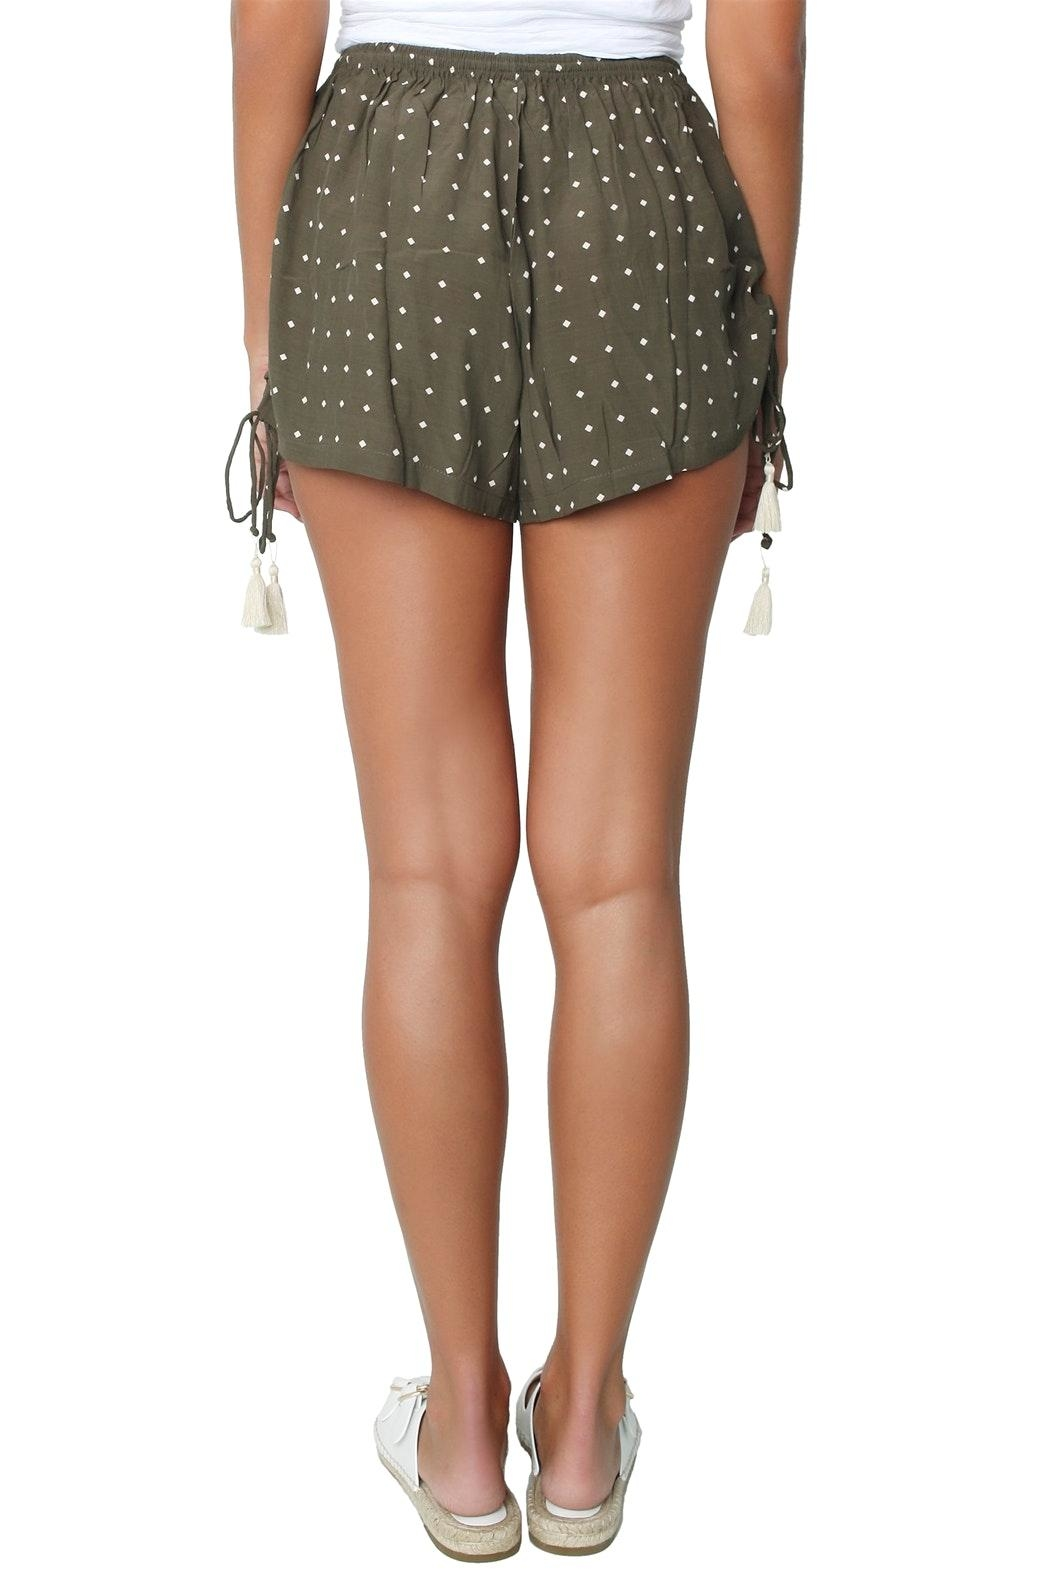 Faithfull The Brand Gypsy Shorts - Back Cropped Image